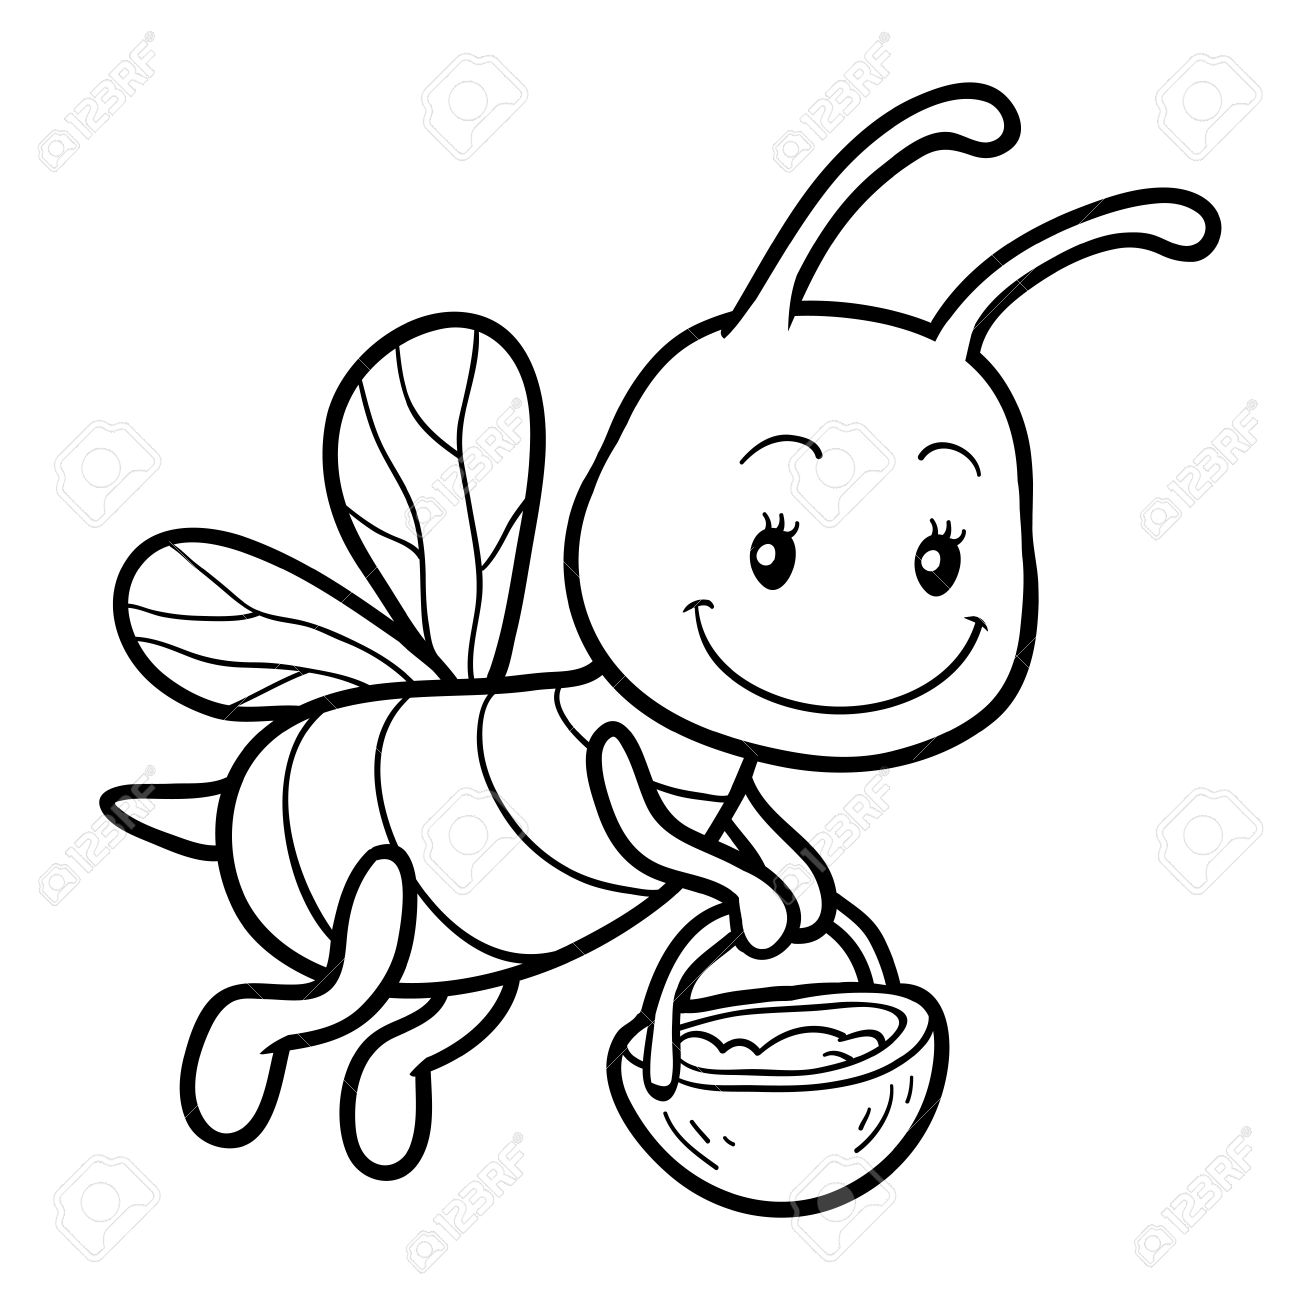 1300x1300 Coloring Book For Children, Coloring Page With A Small Bee Royalty